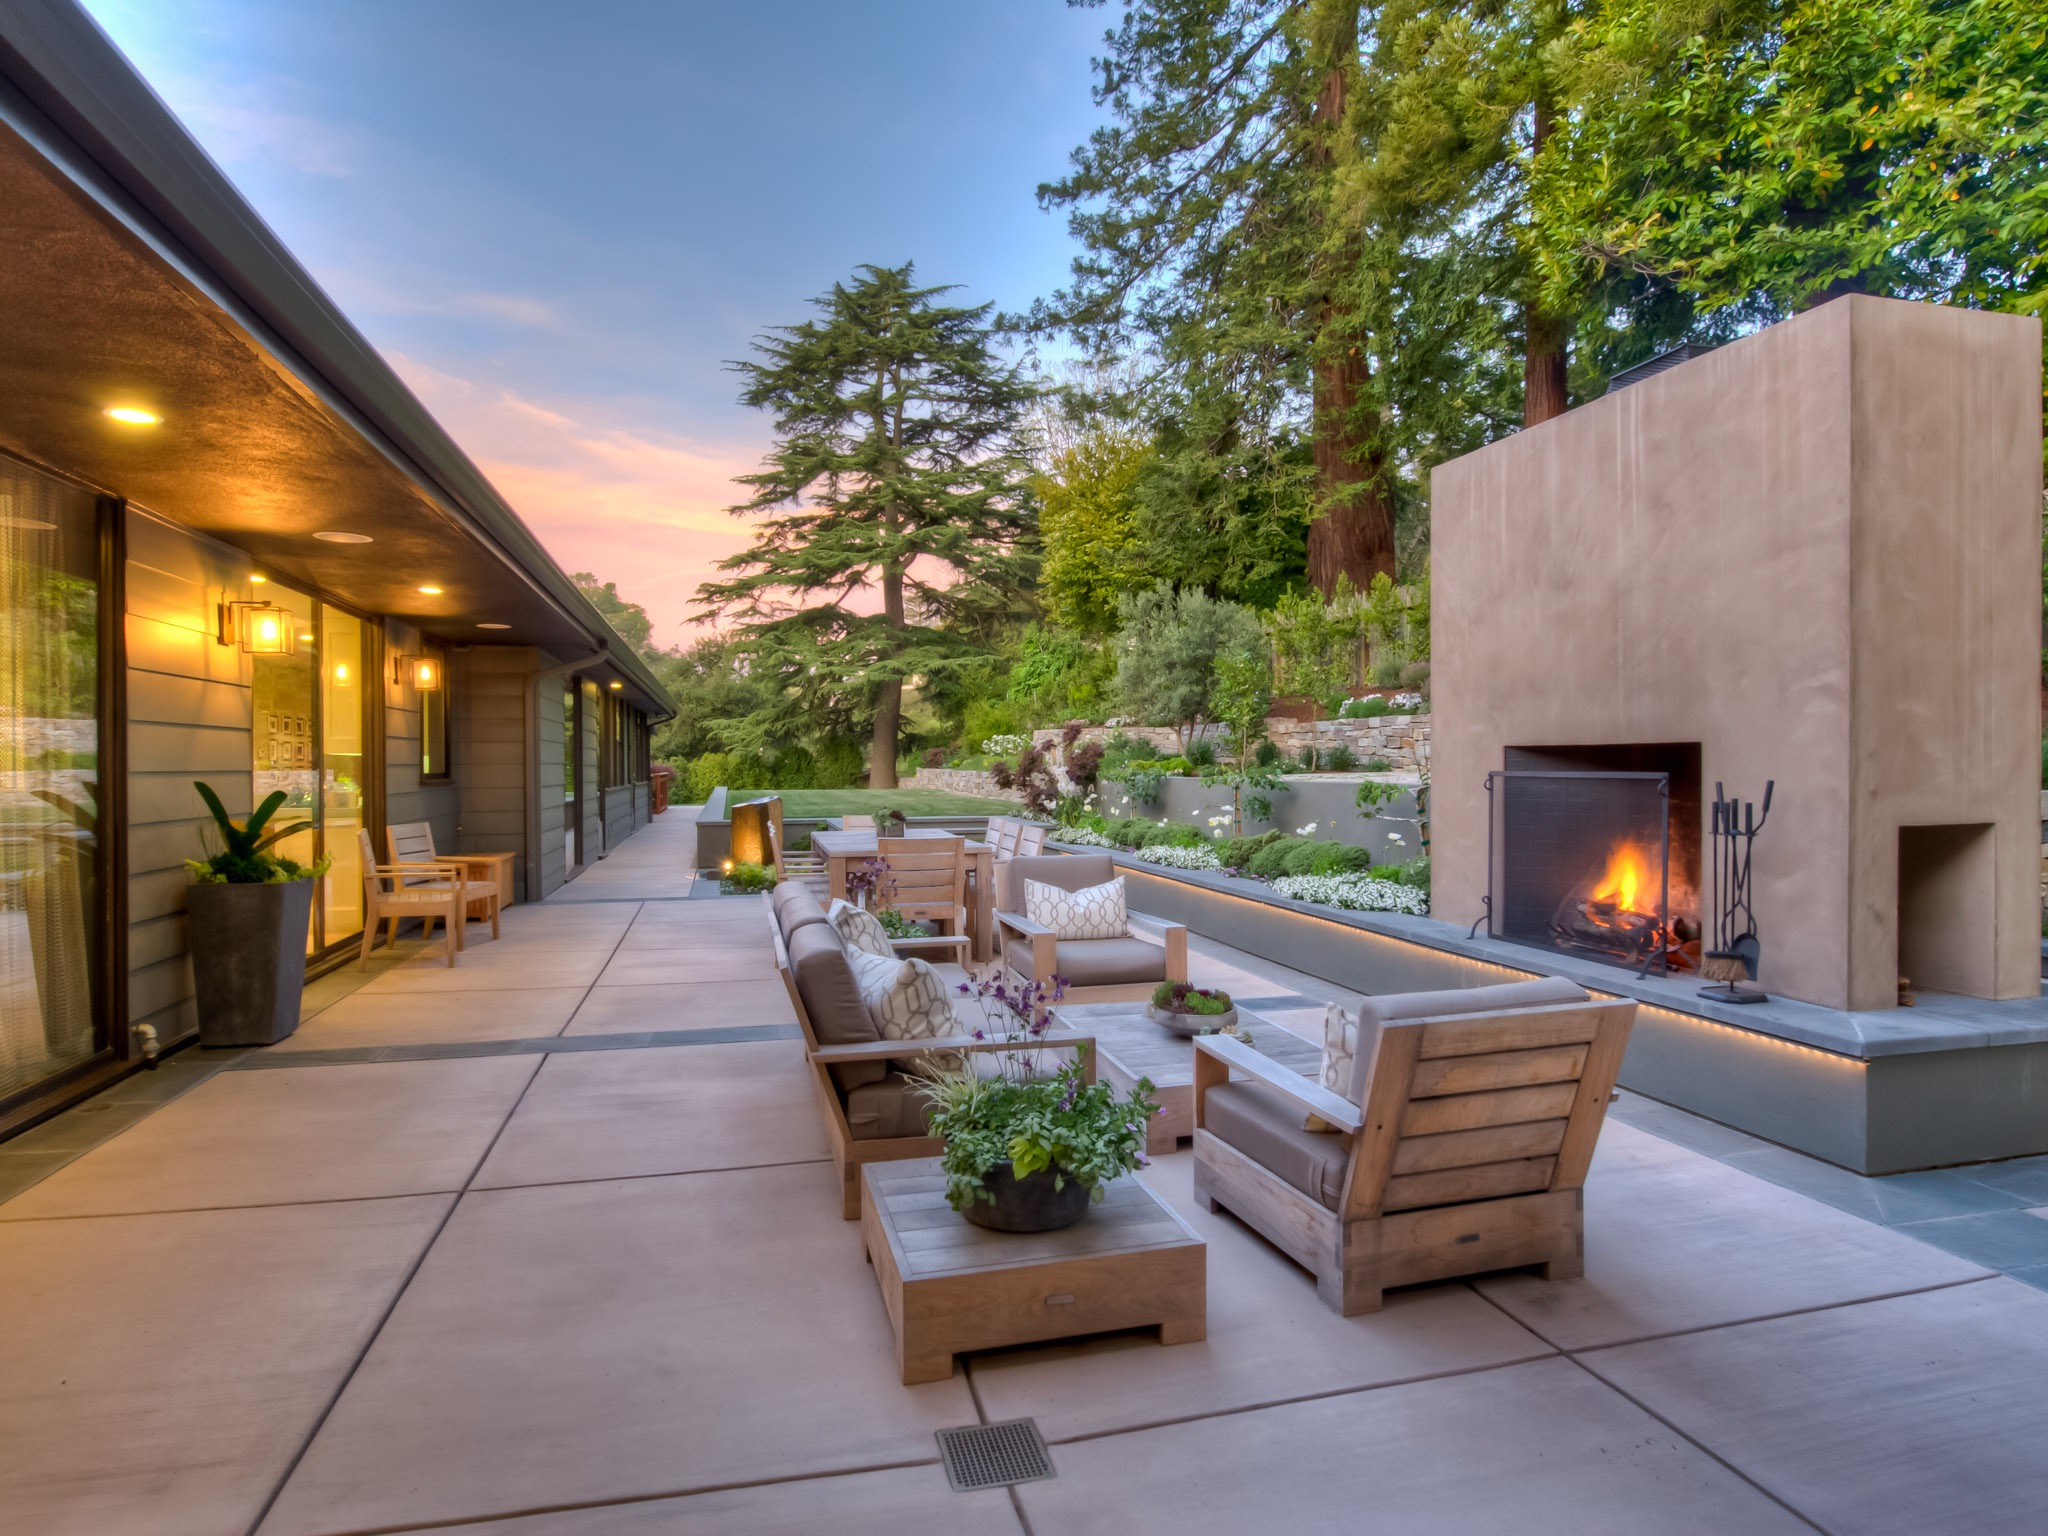 Contemporary Patio With Fireplace And Terraced Garden (Image 16 of 35)